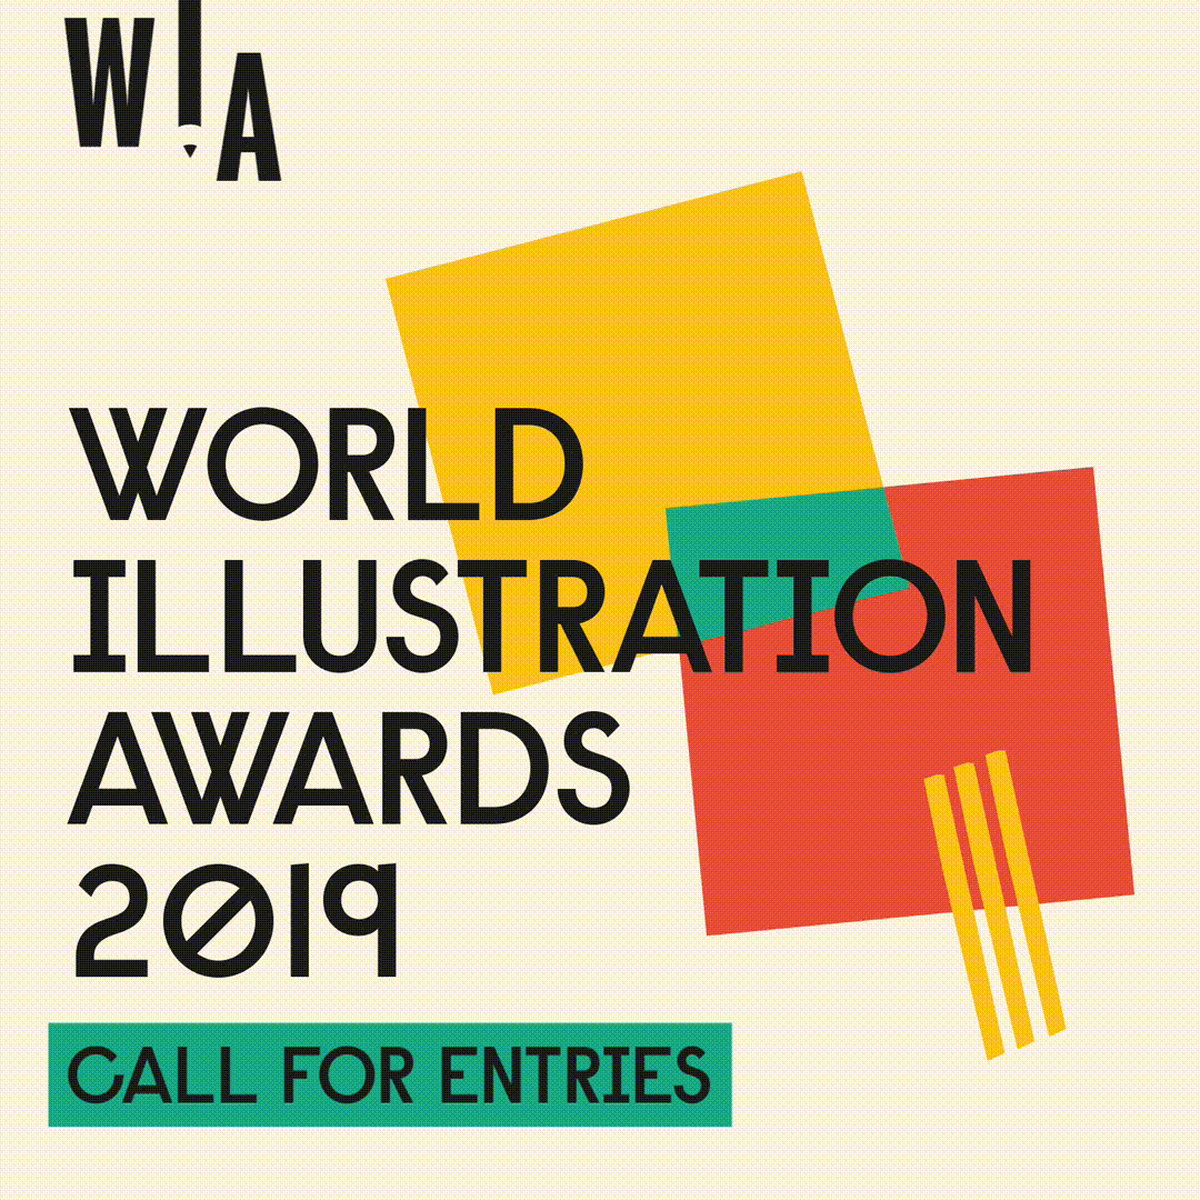 World Illustration Awards 2019 Exhibition